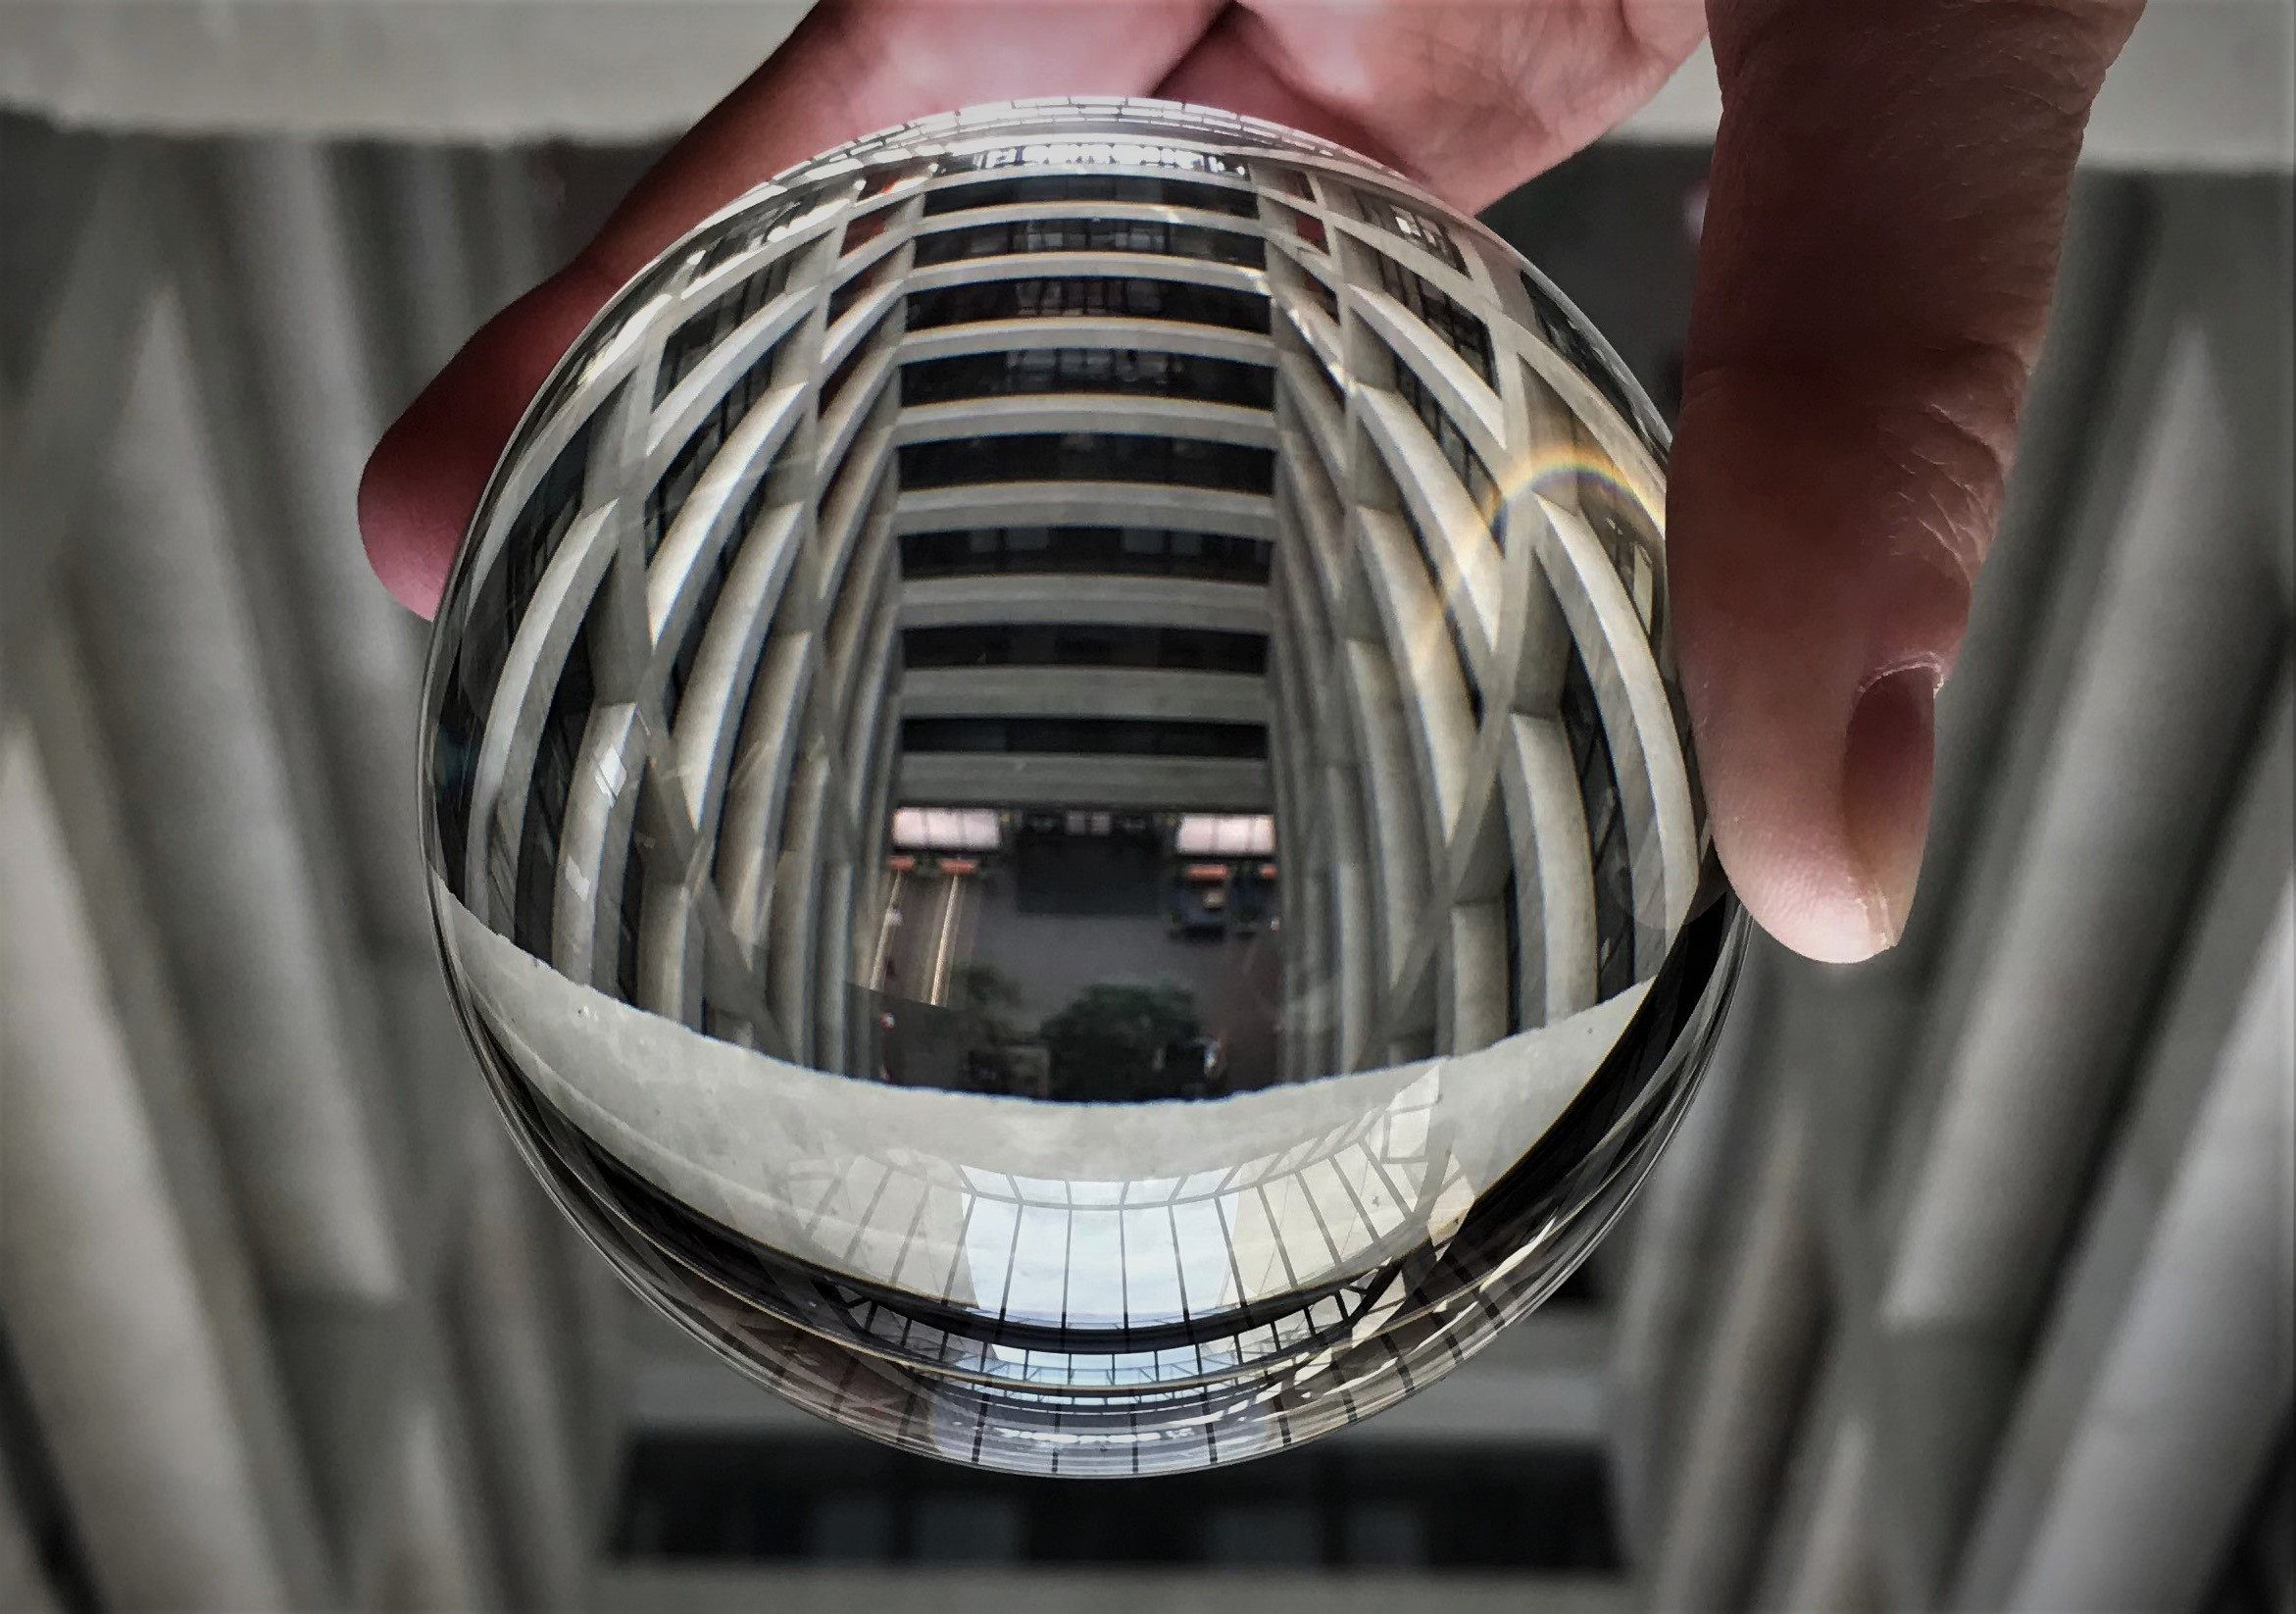 Wilson, Wilson, through a ball, who's the fairest of the halls? everyday objects, Wilson Hall, building Photo: Donna Iraci